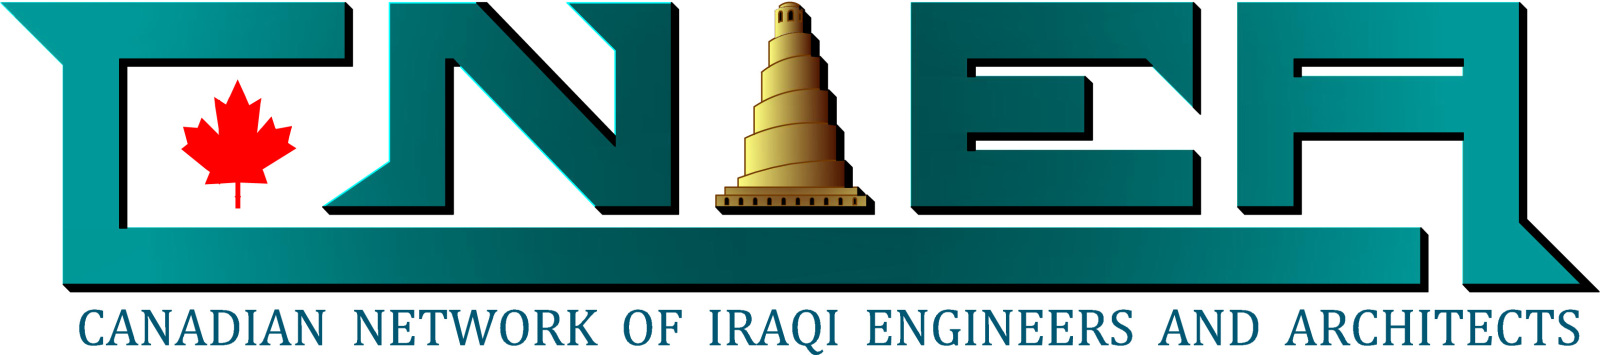 Canadian Network of Iraqi Engineers and Architects